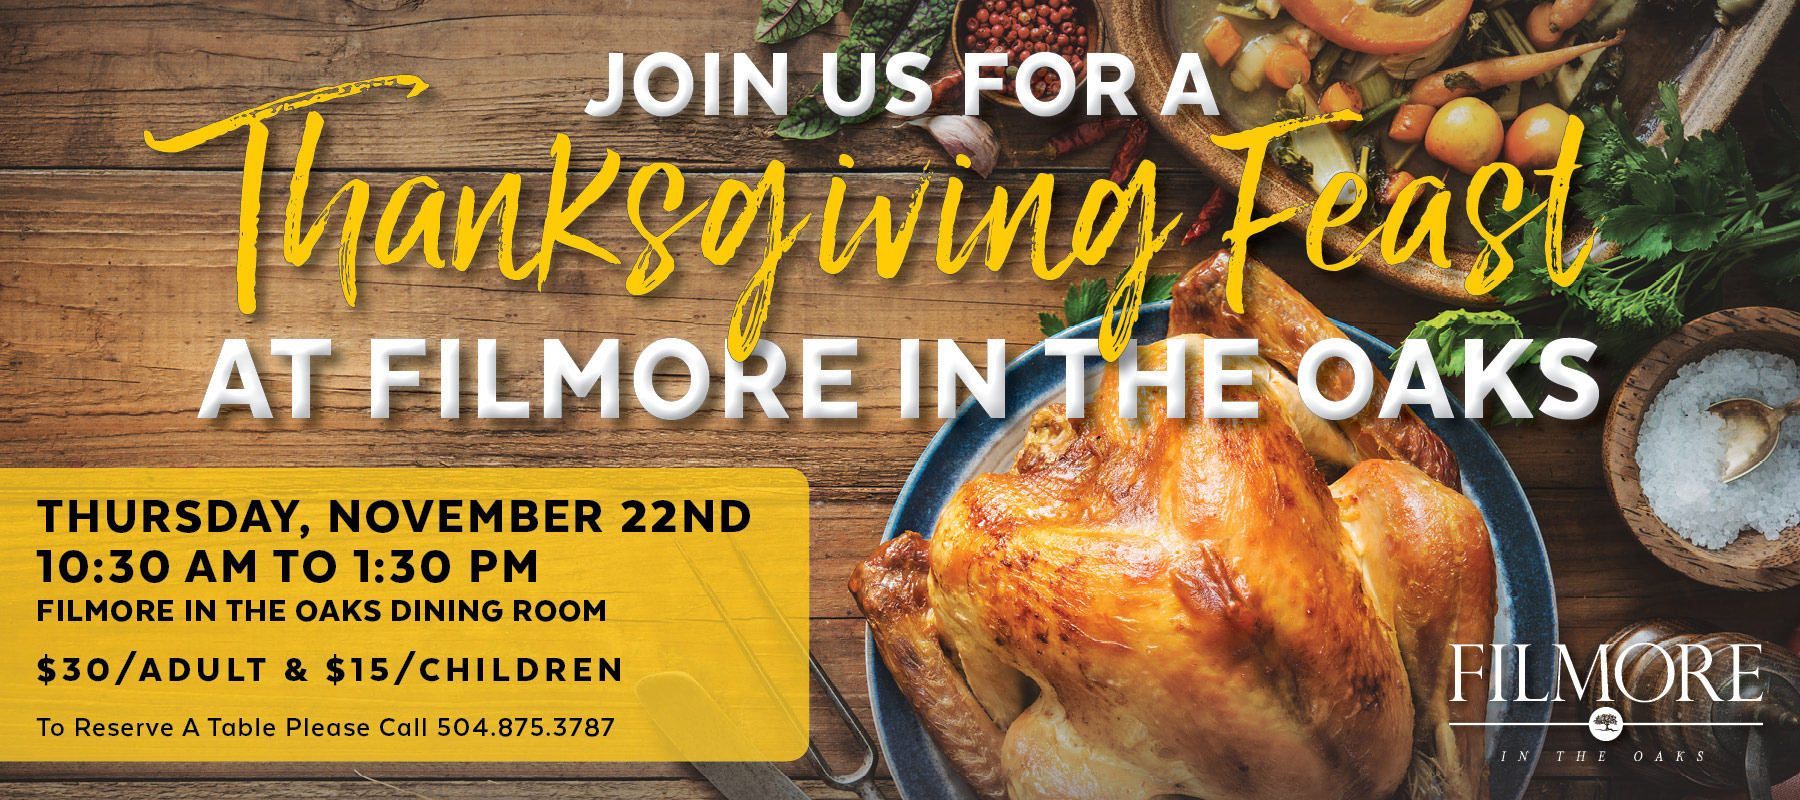 Join us for a Thanksgiving Feast at Filmore in the Oaks.  Thursday November 22.  10:30am to 1:30 pm.  To reserve, call 504-875-3787